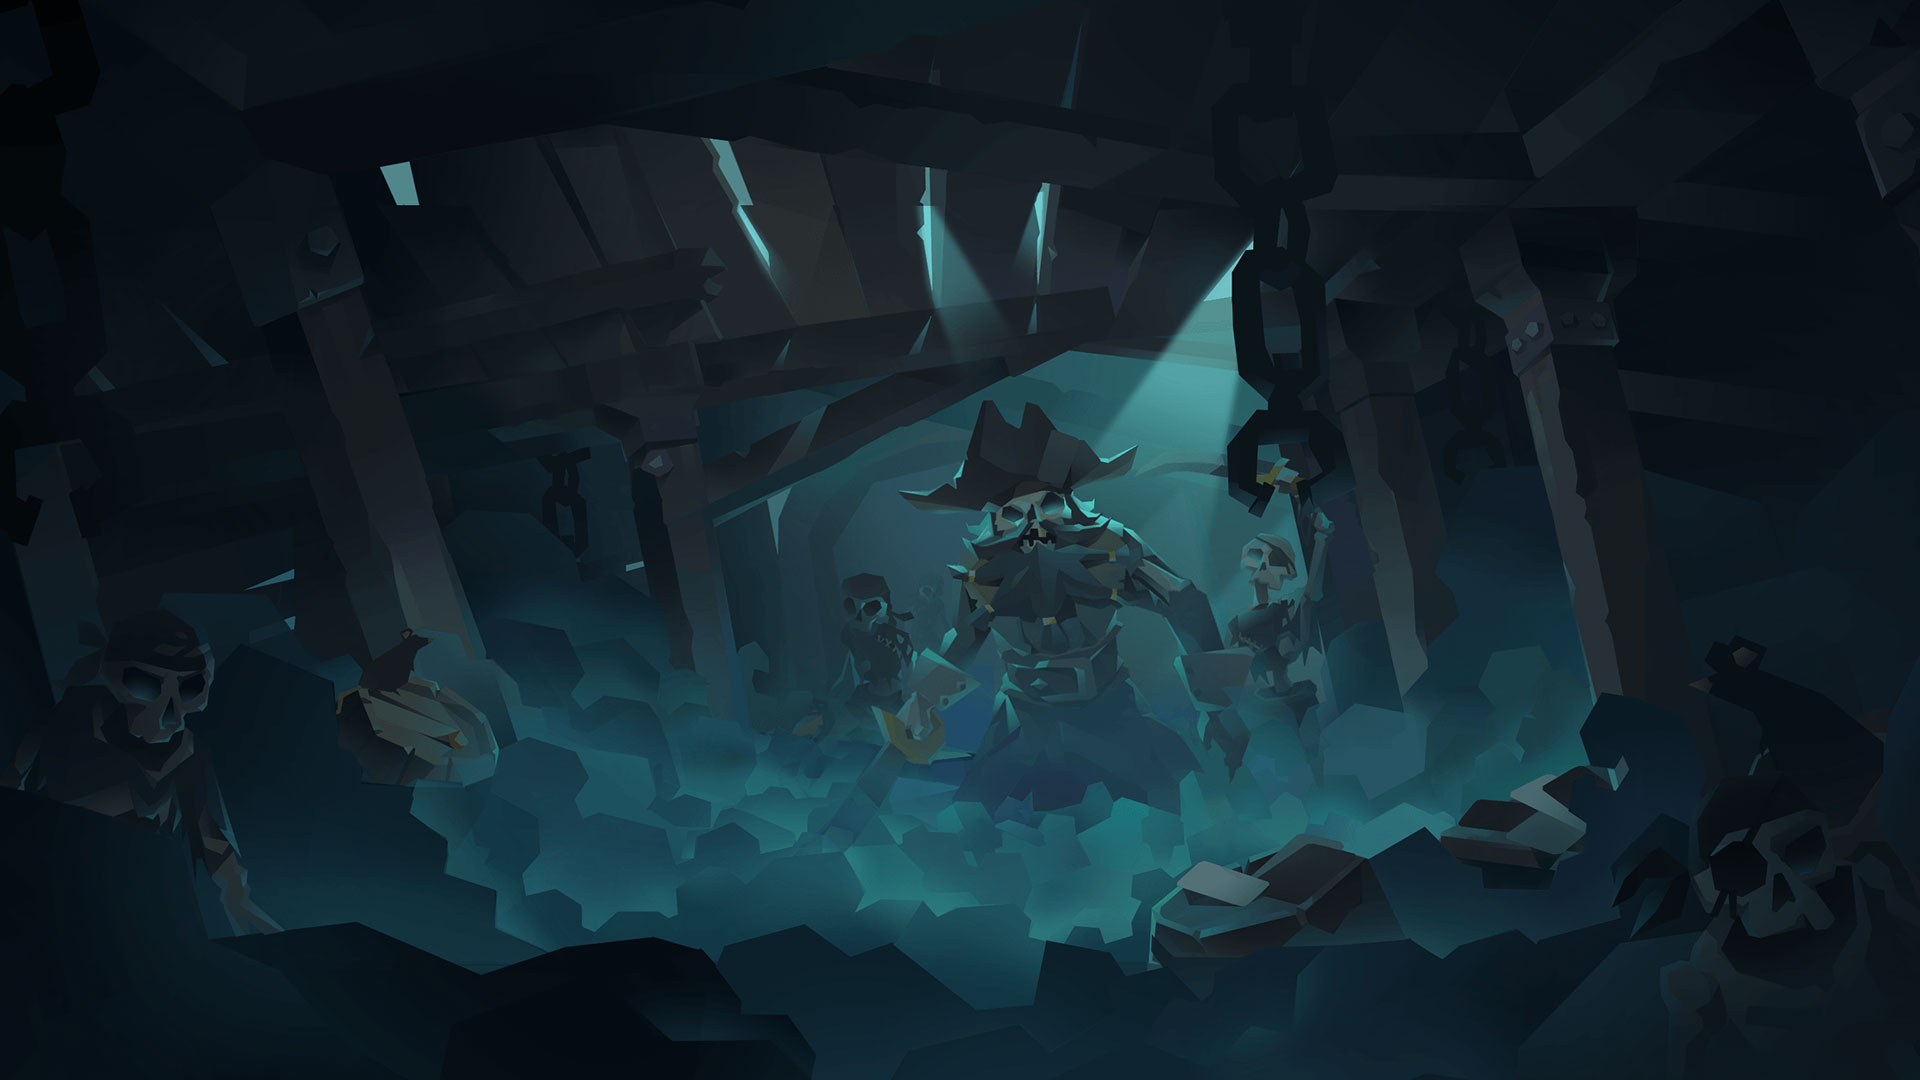 SKULLS ISLANDS - Stories and legends of Skulls Islands are many and dark. But each of them mentions a relic that can bring the dead back to life!